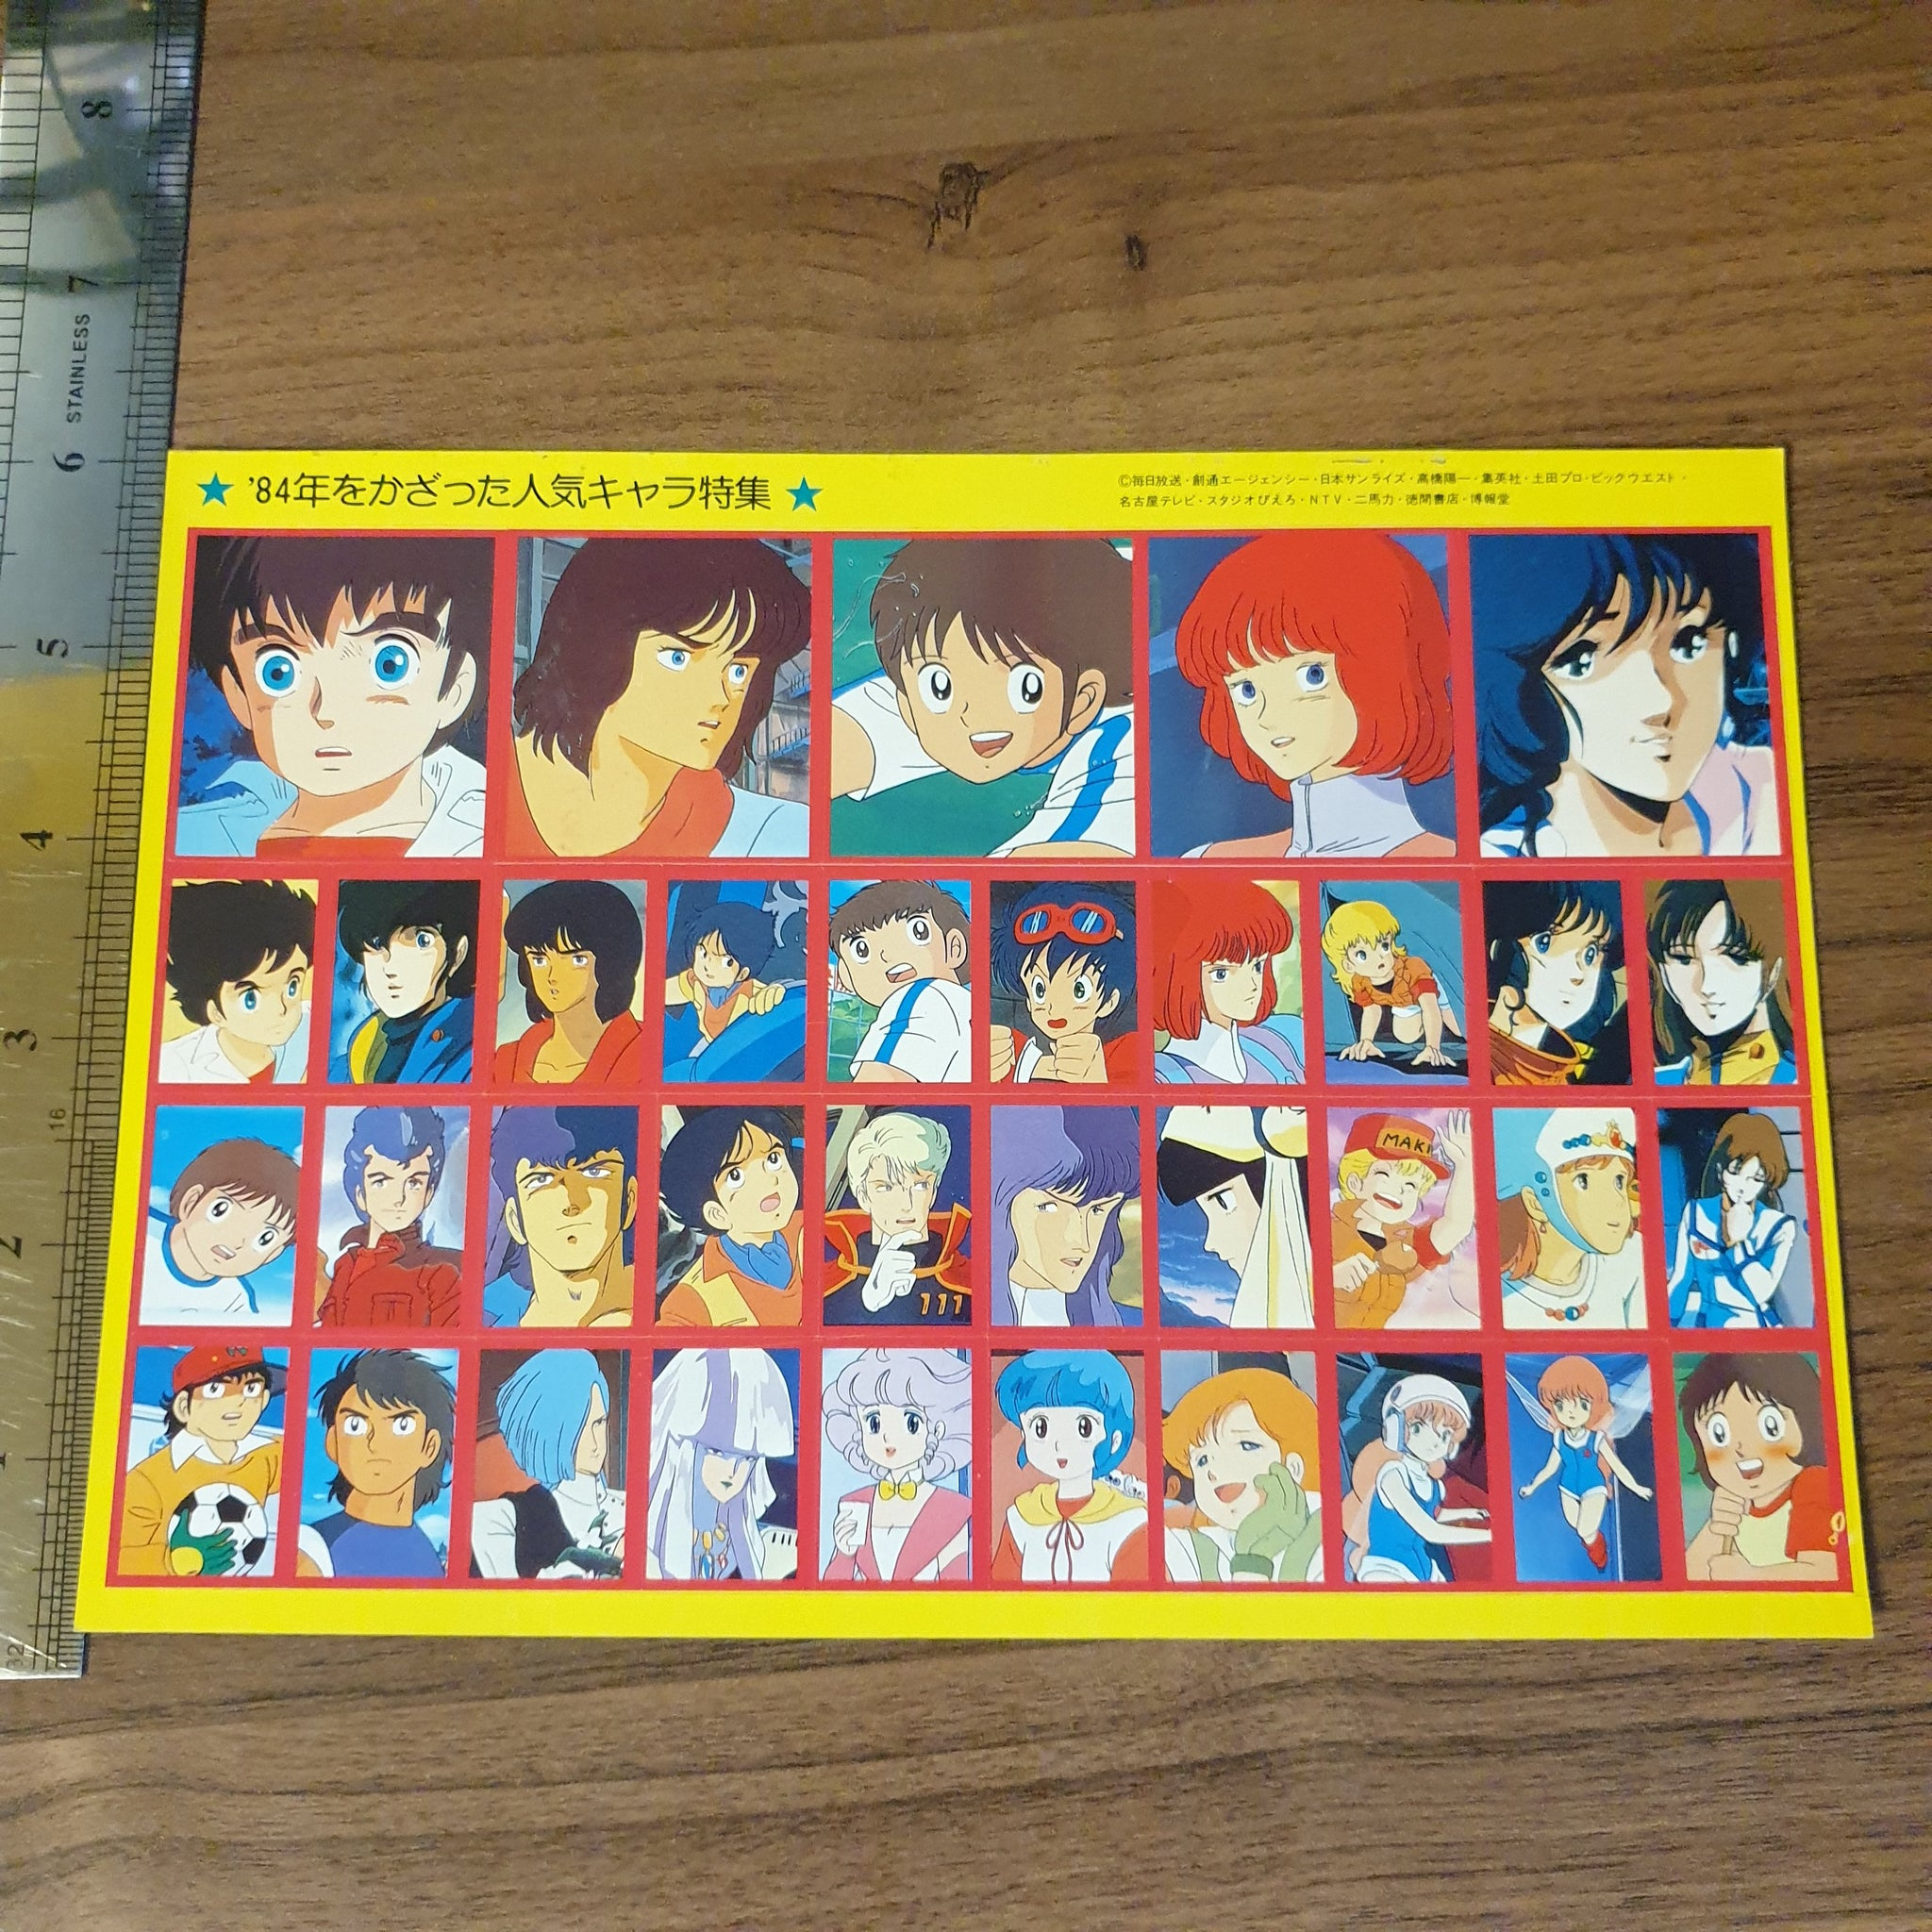 Manga Appendix Sticker Sheet - 80s Anime Characters Mix #4 - 20200904 - BL11